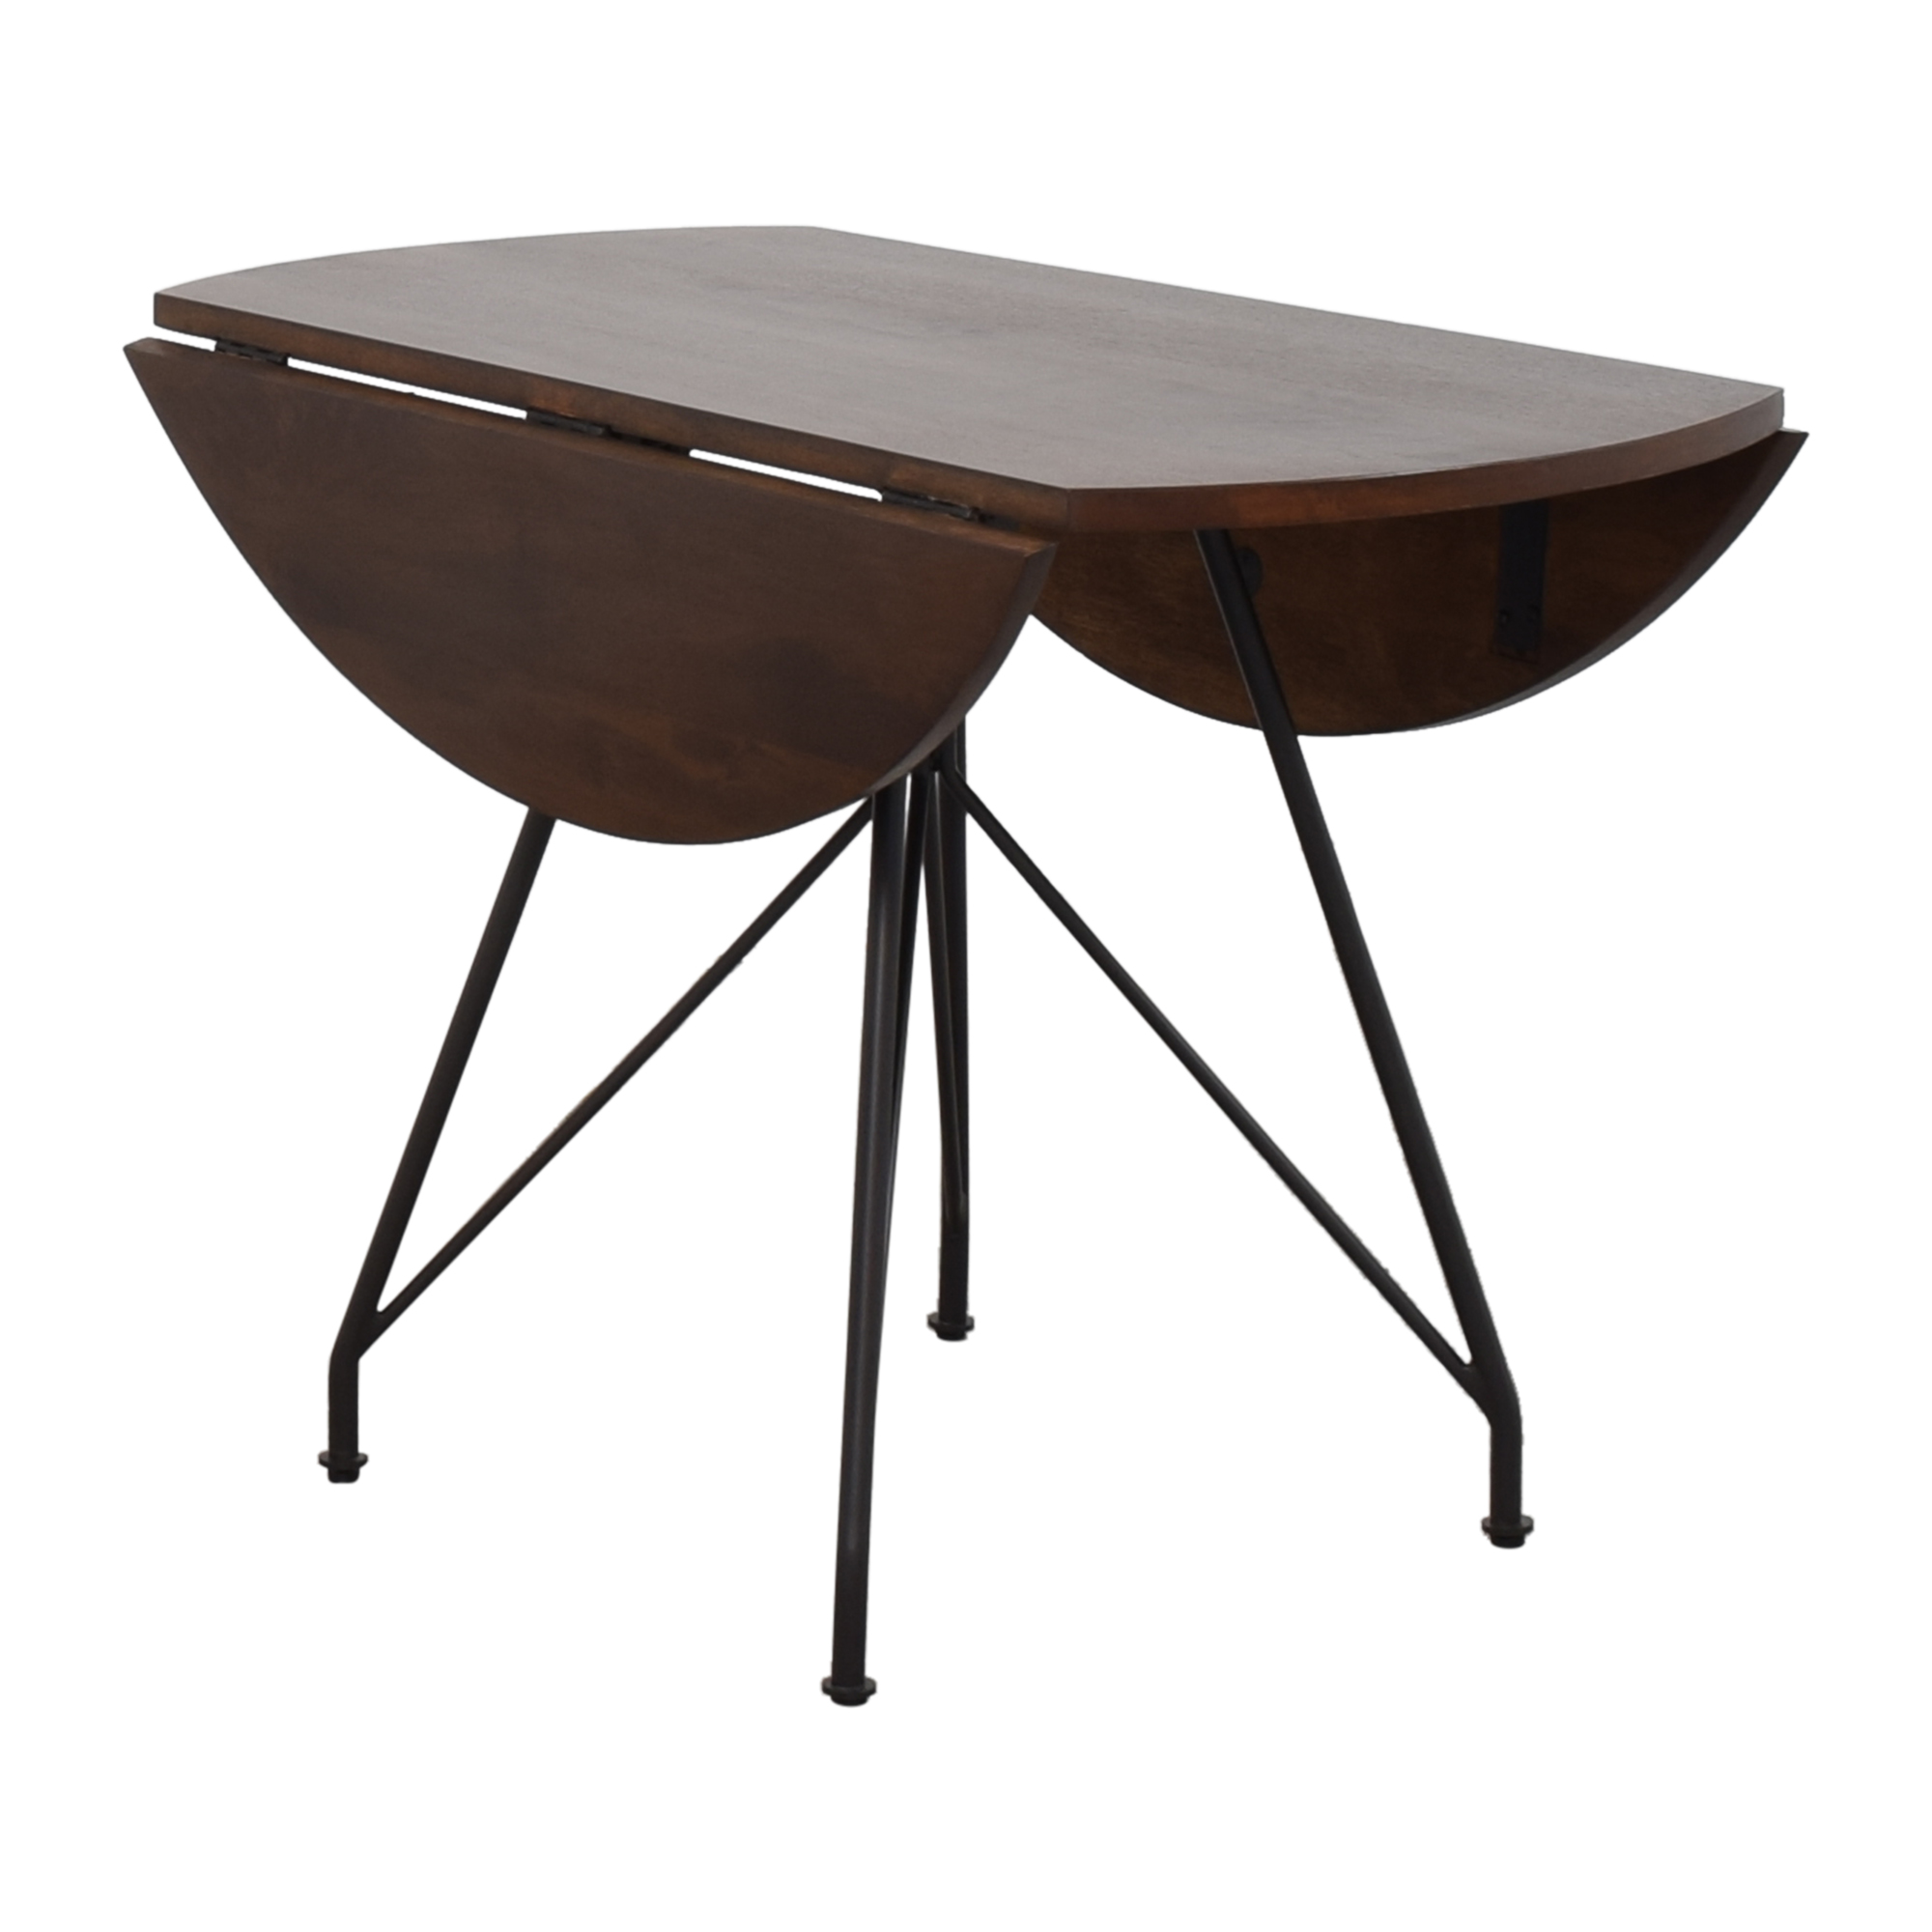 West Elm West Elm Jules Drop Leaf Expandable Dining Table ct